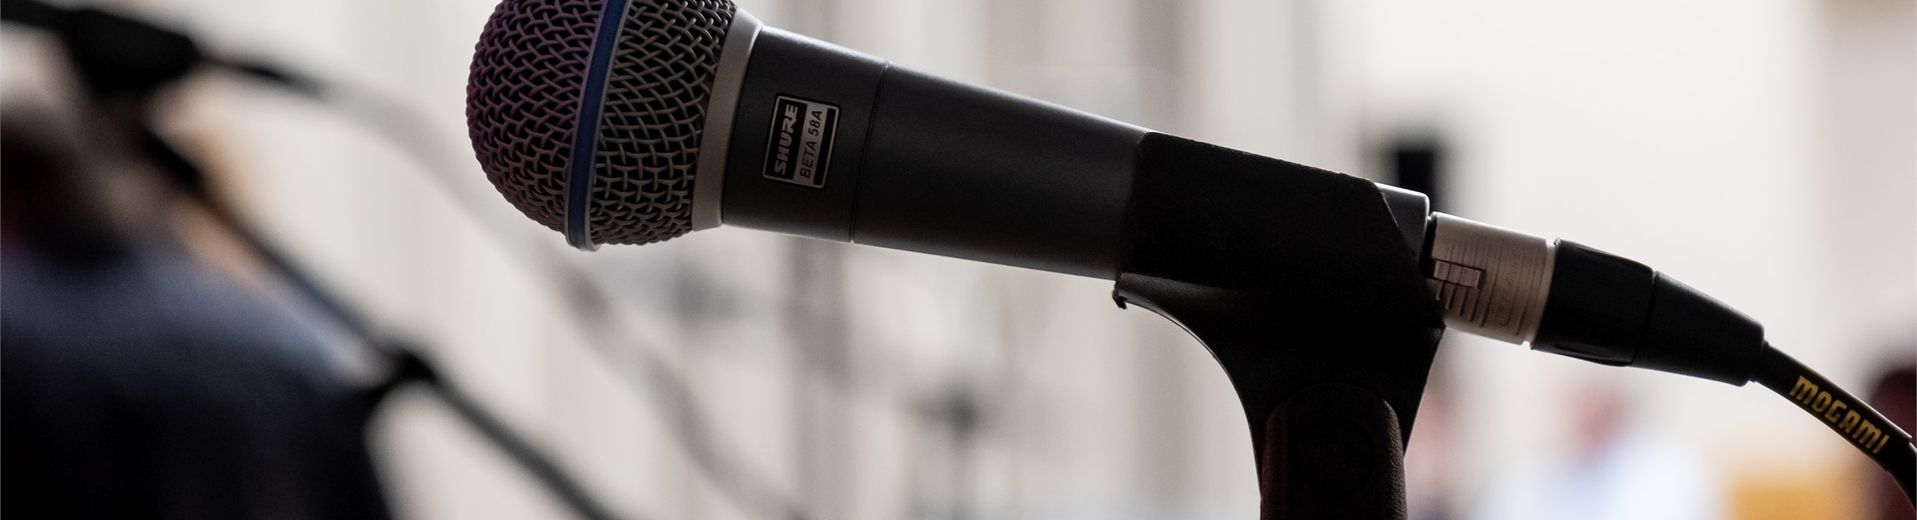 Microphone on a stand in a classroom